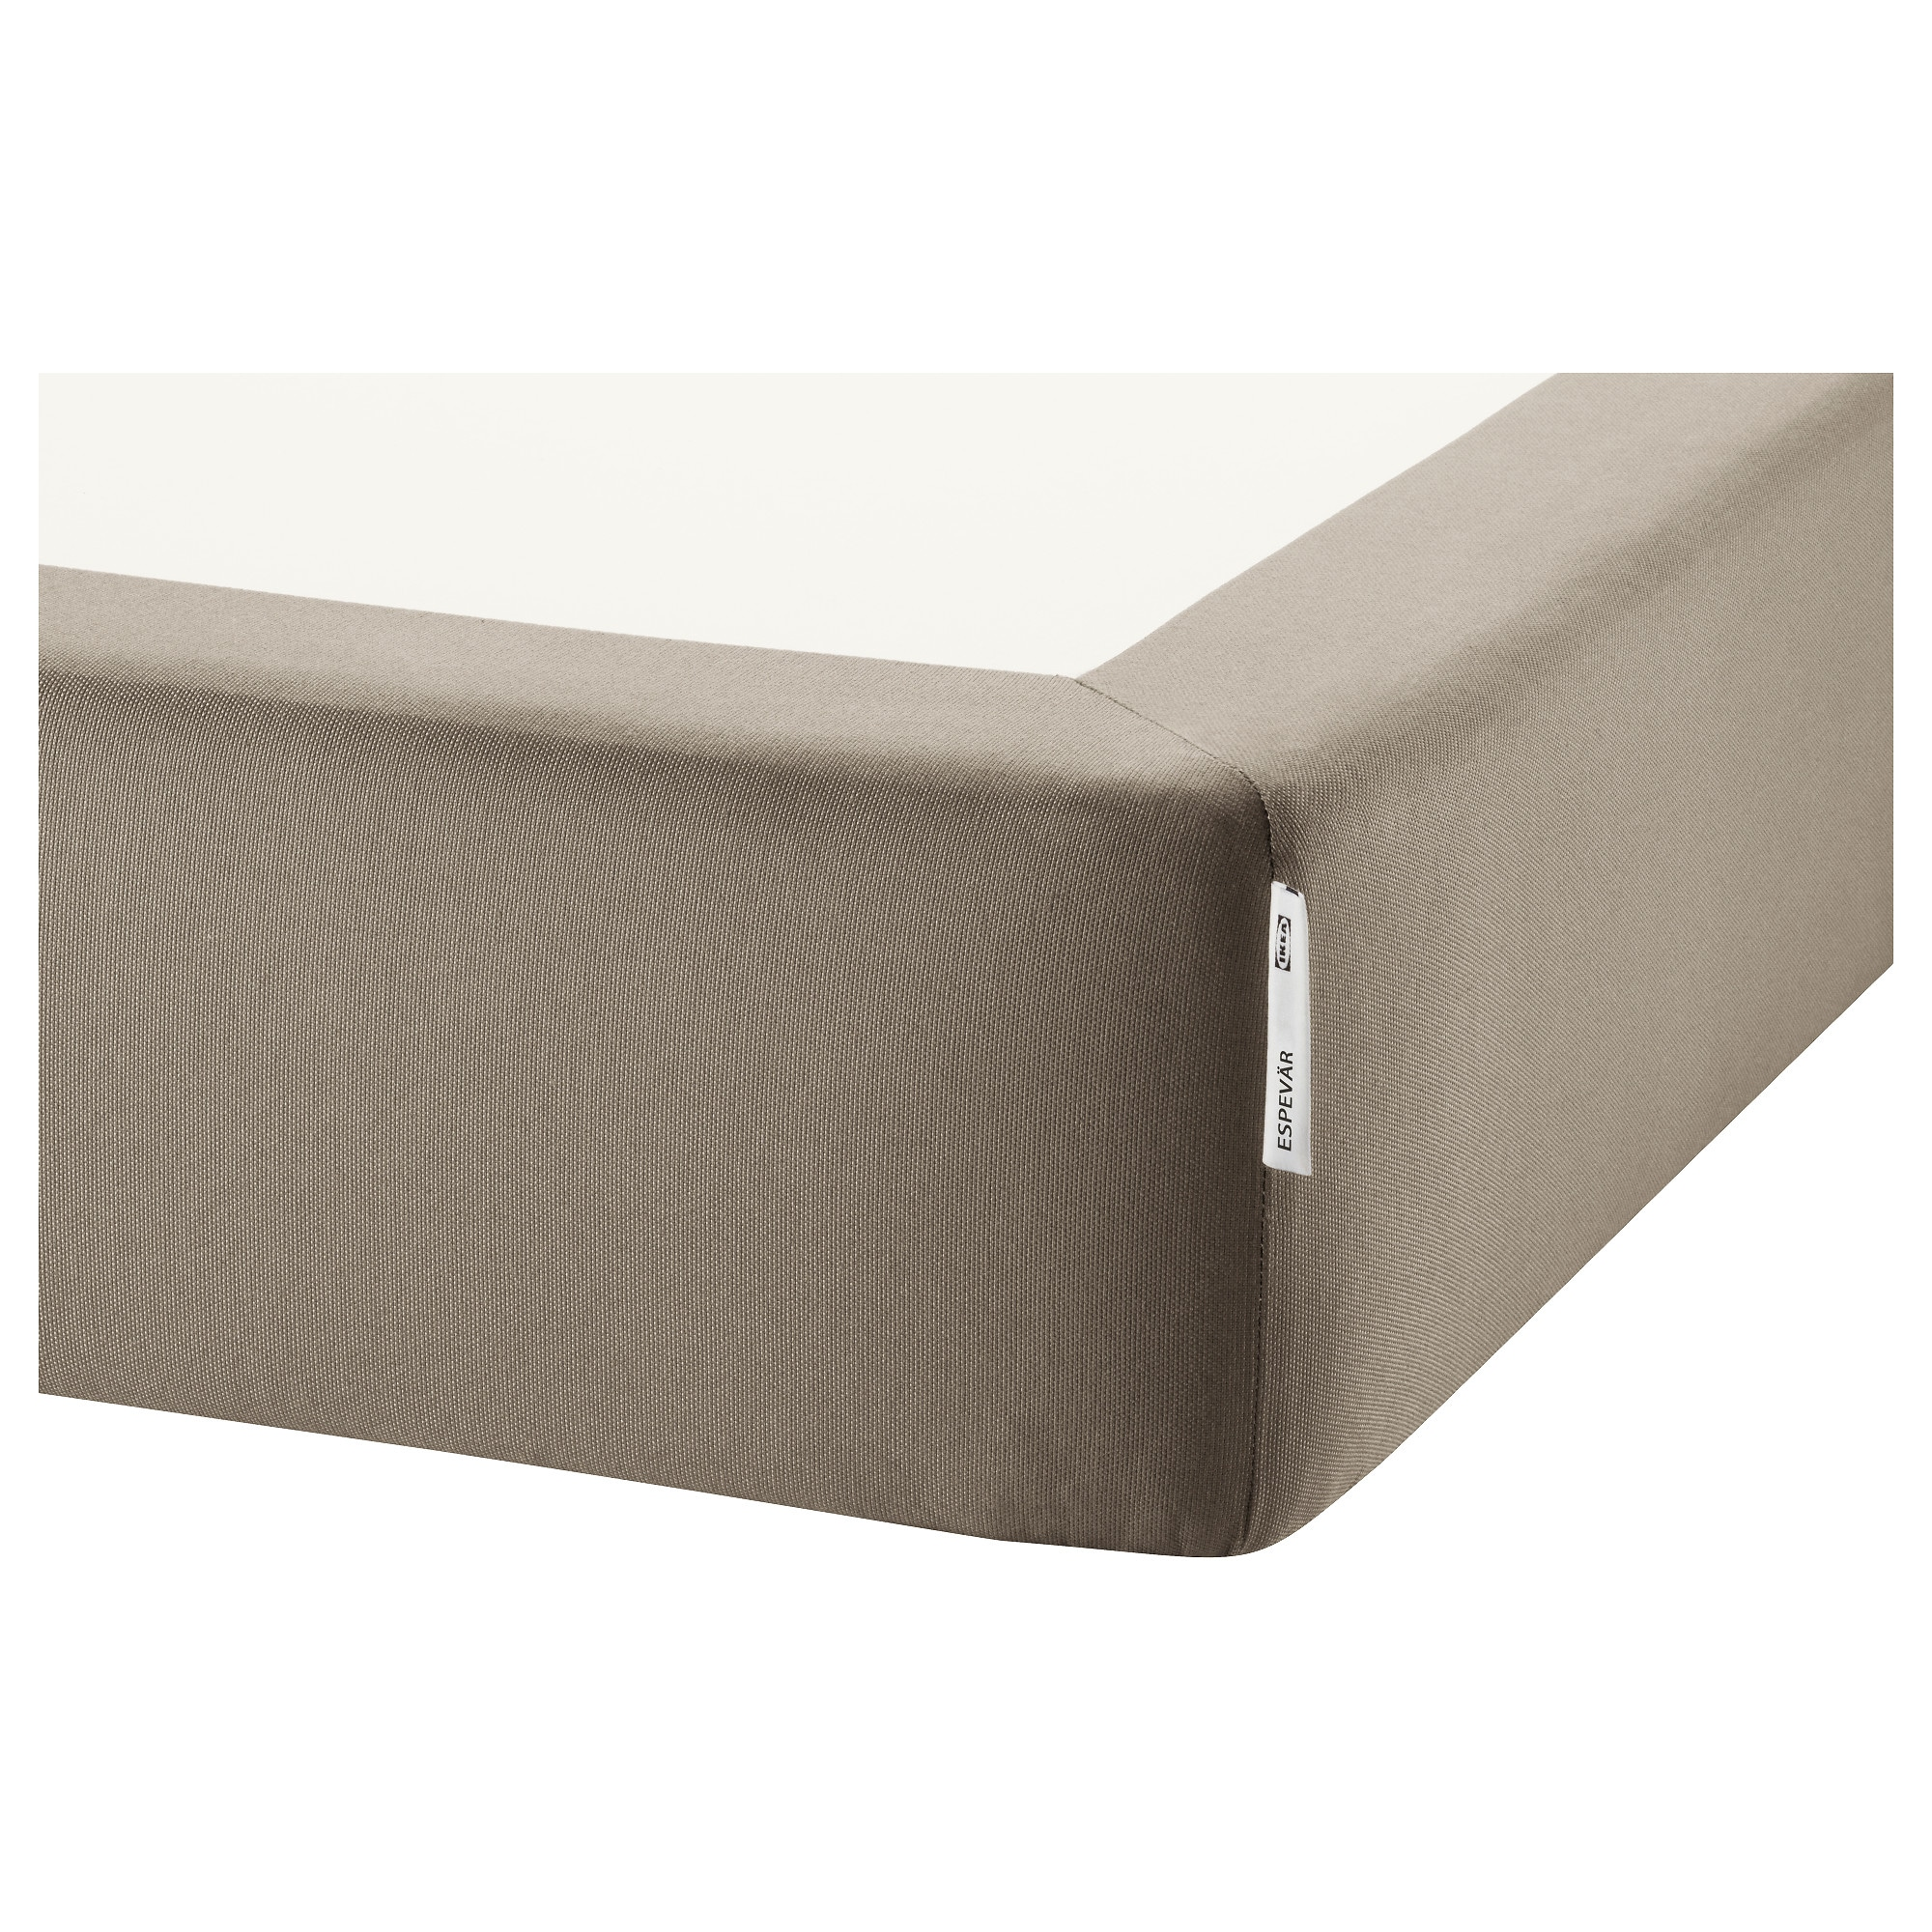 ESPEVÄR spring mattress base for bed frame, dark beige Length: 74 3/8